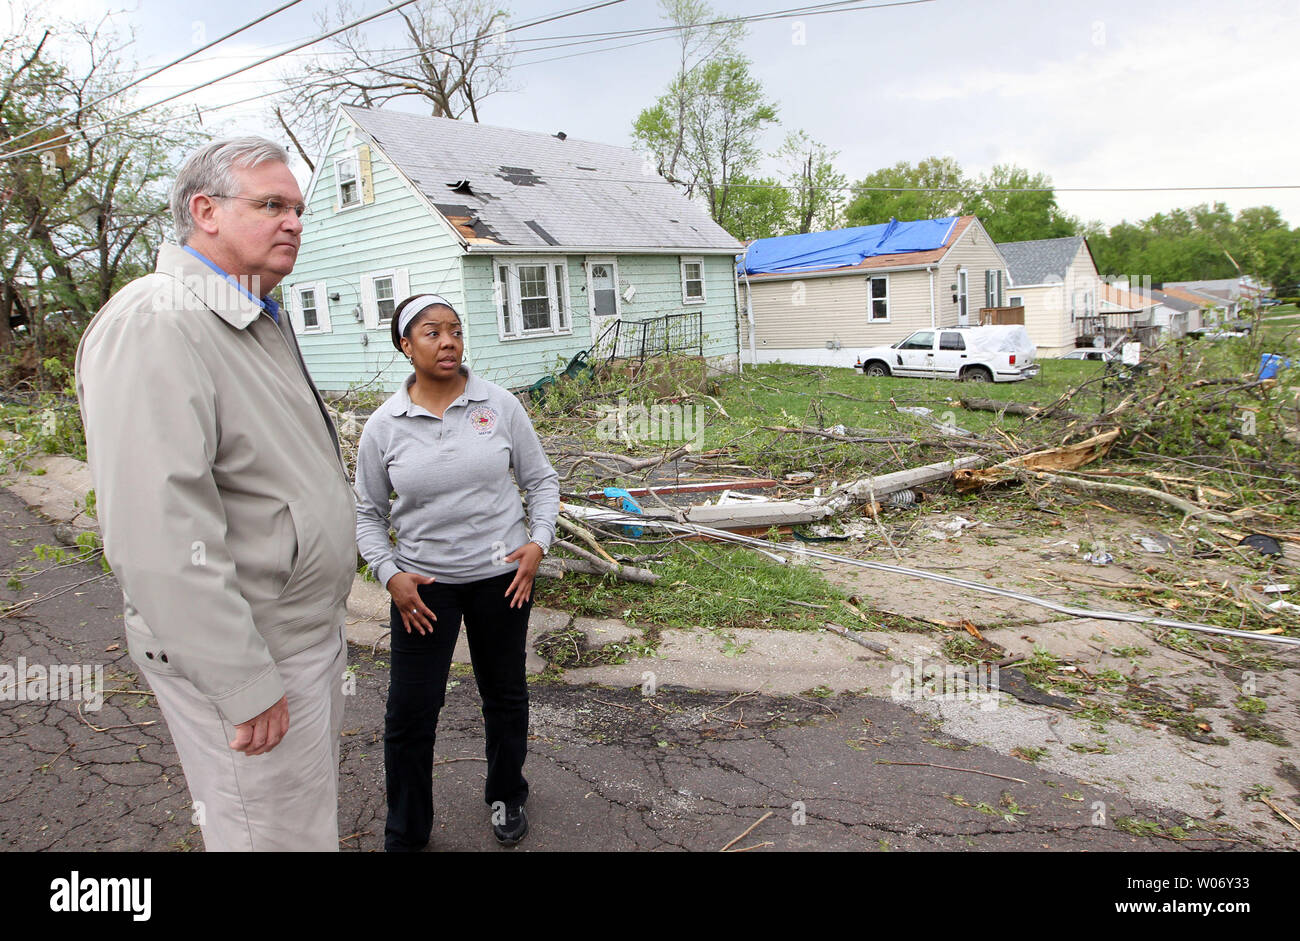 Missouri Governor Jay Nixon gets a tour of a damaged neighborhood by Berkeley, Missouri Mayor Kyra Watson in St. Louis on April 23, 2011. A F-4 tornado hit the region on 4/22 damaging or destroying over 750 homes and buildings.  UPI/Bill Greenblatt Stock Photo